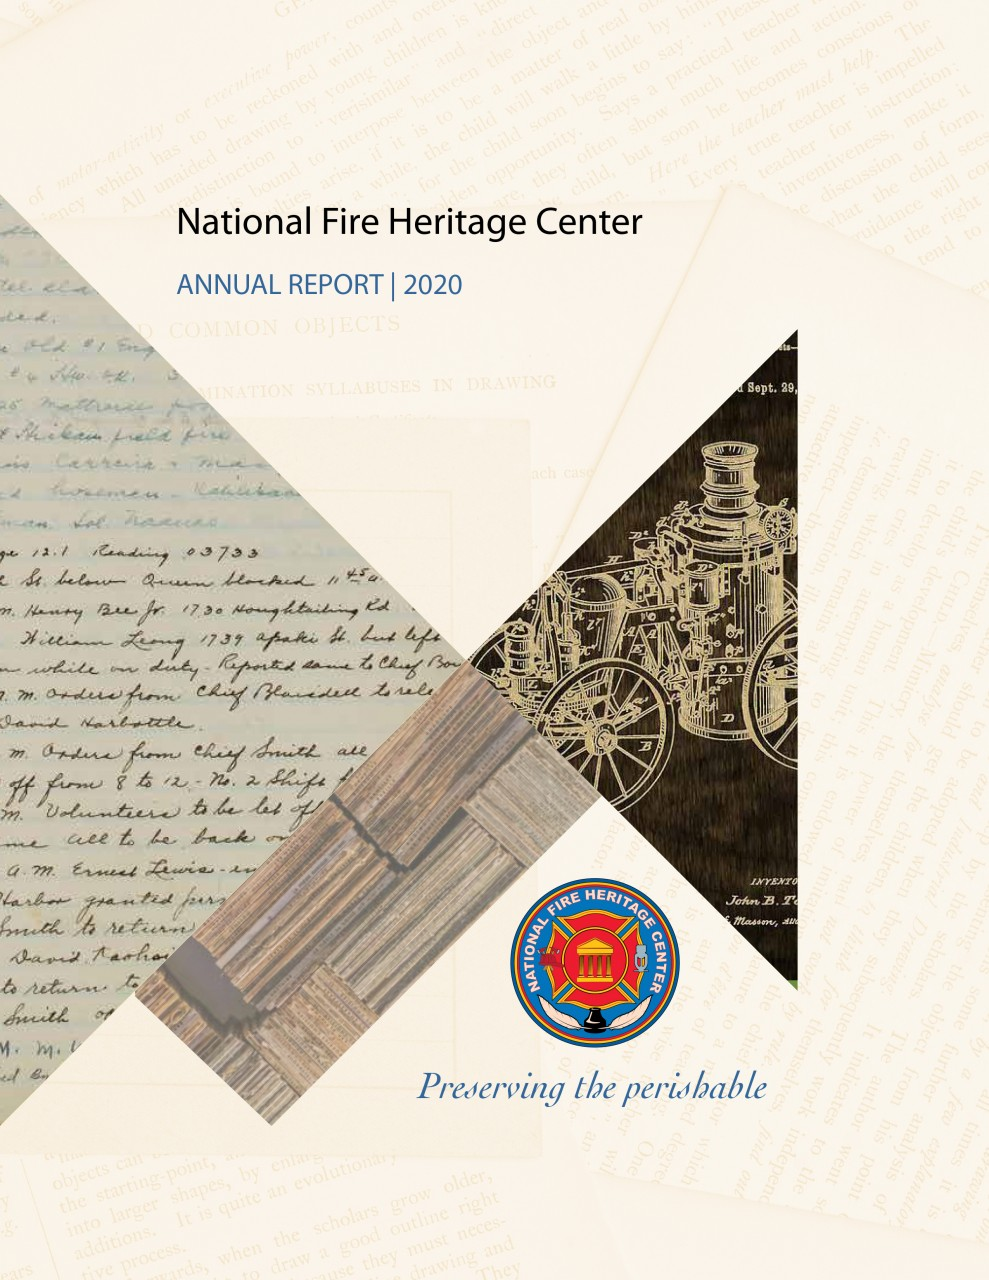 National Fire Heritage Center: Annual Report 2020